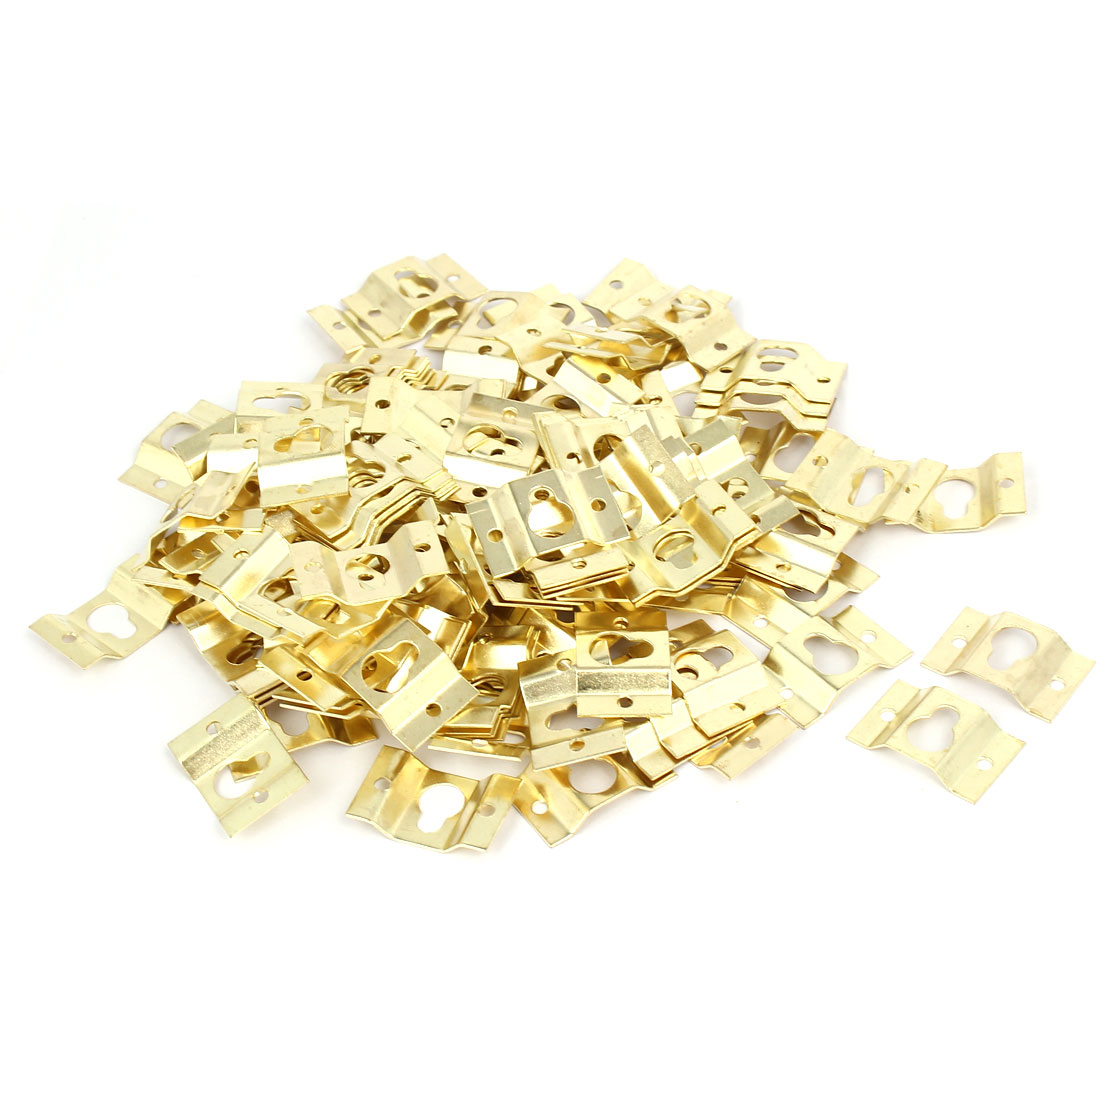 28mmx18mmx4mm Wall Hanging Picture Photo Frame Hidden Hook Gold Tone 200pcs